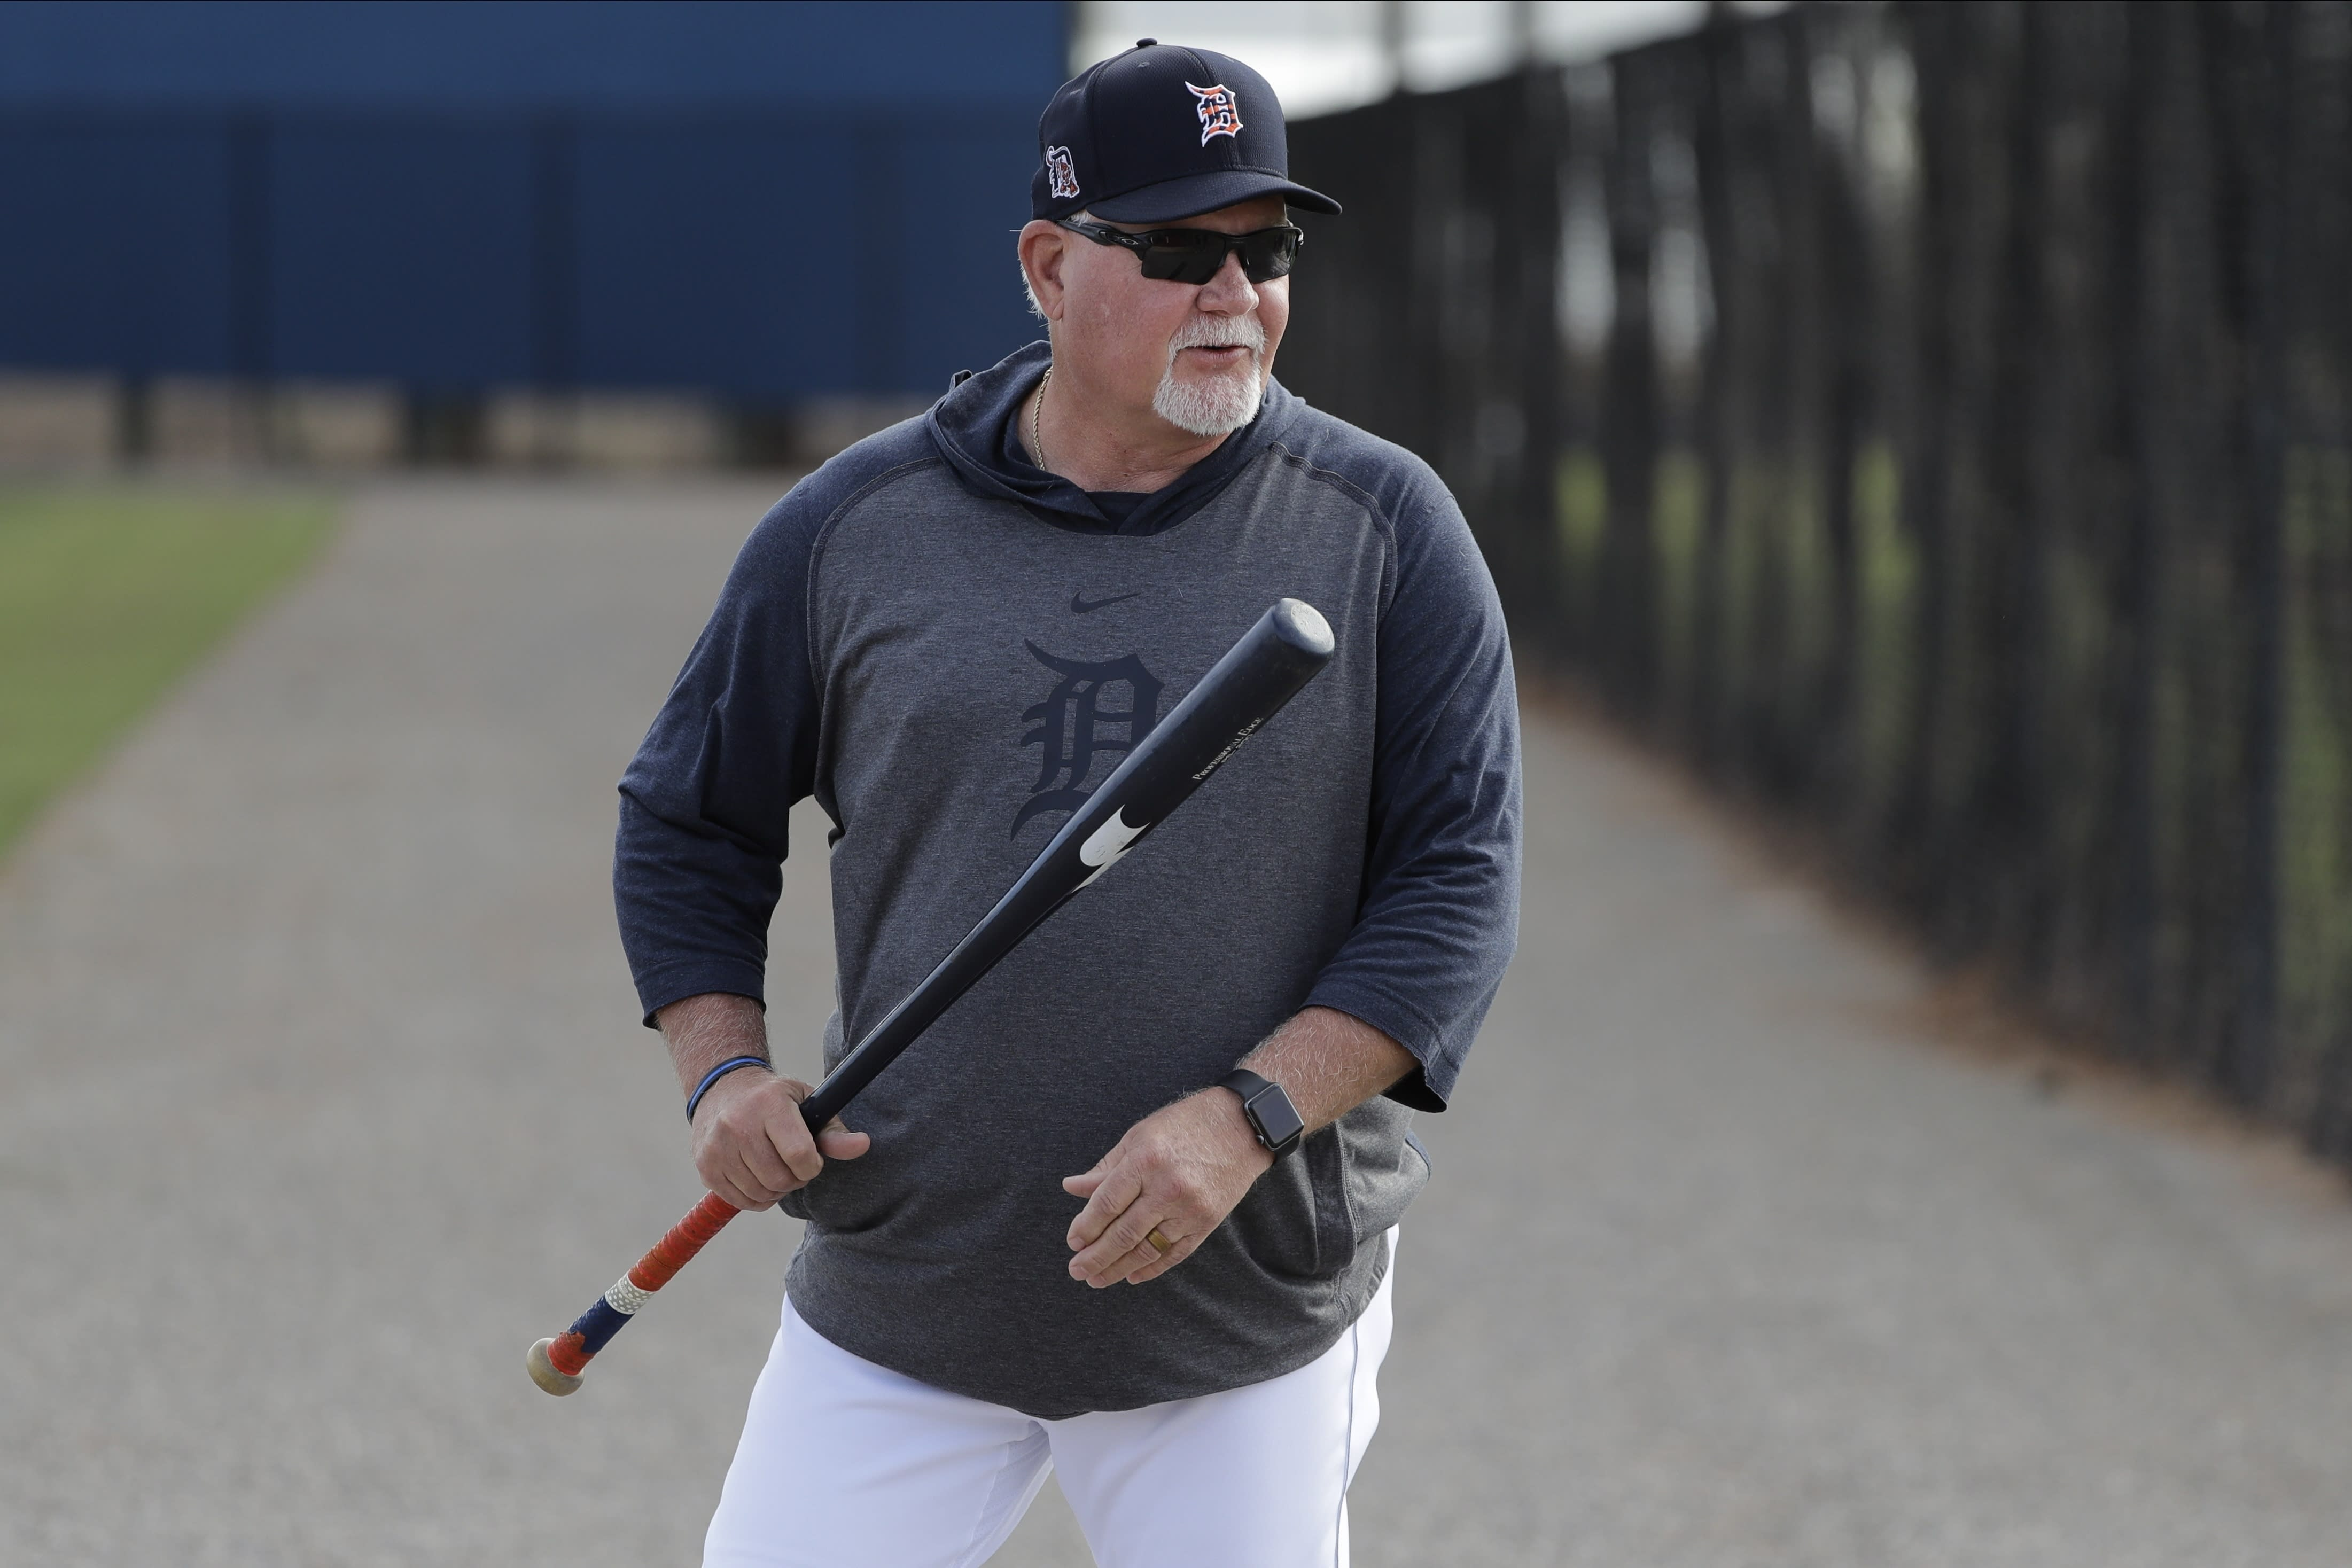 FILE - In this Feb. 15, 2020, file photo, Detroit Tigers manager Ron Gardenhire arrives for a spring training baseball workout in Lakeland, Fla. Gardenhire announced his retirement prior to Detroit's game against the Cleveland Indians on Saturday, Sept. 19,2020. (AP Photo/Frank Franklin II, File)